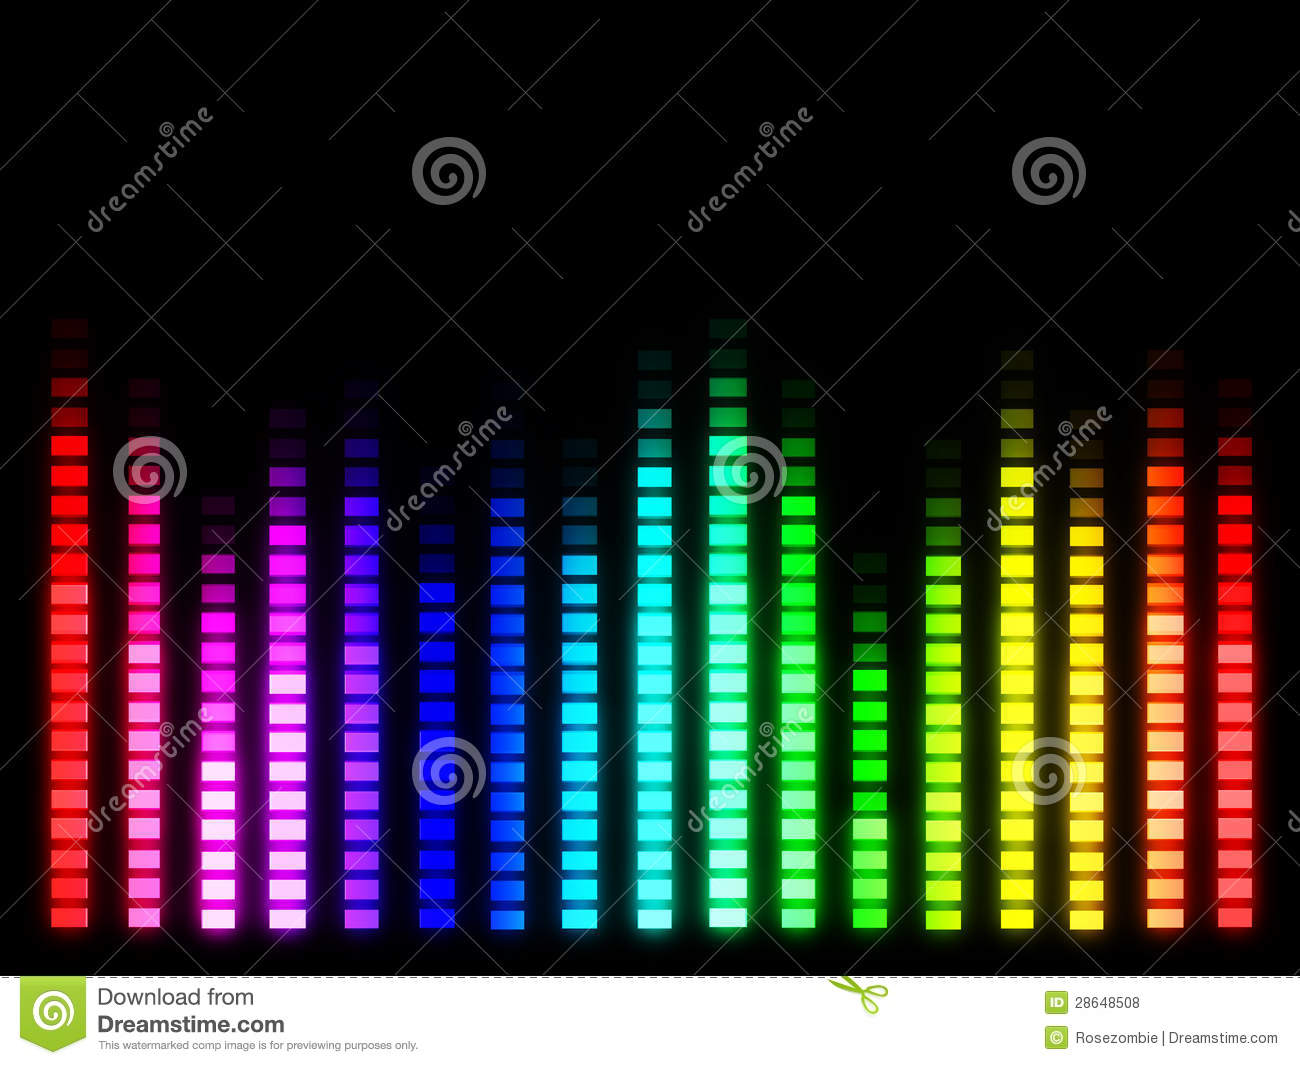 Free Download Nature Sound Music